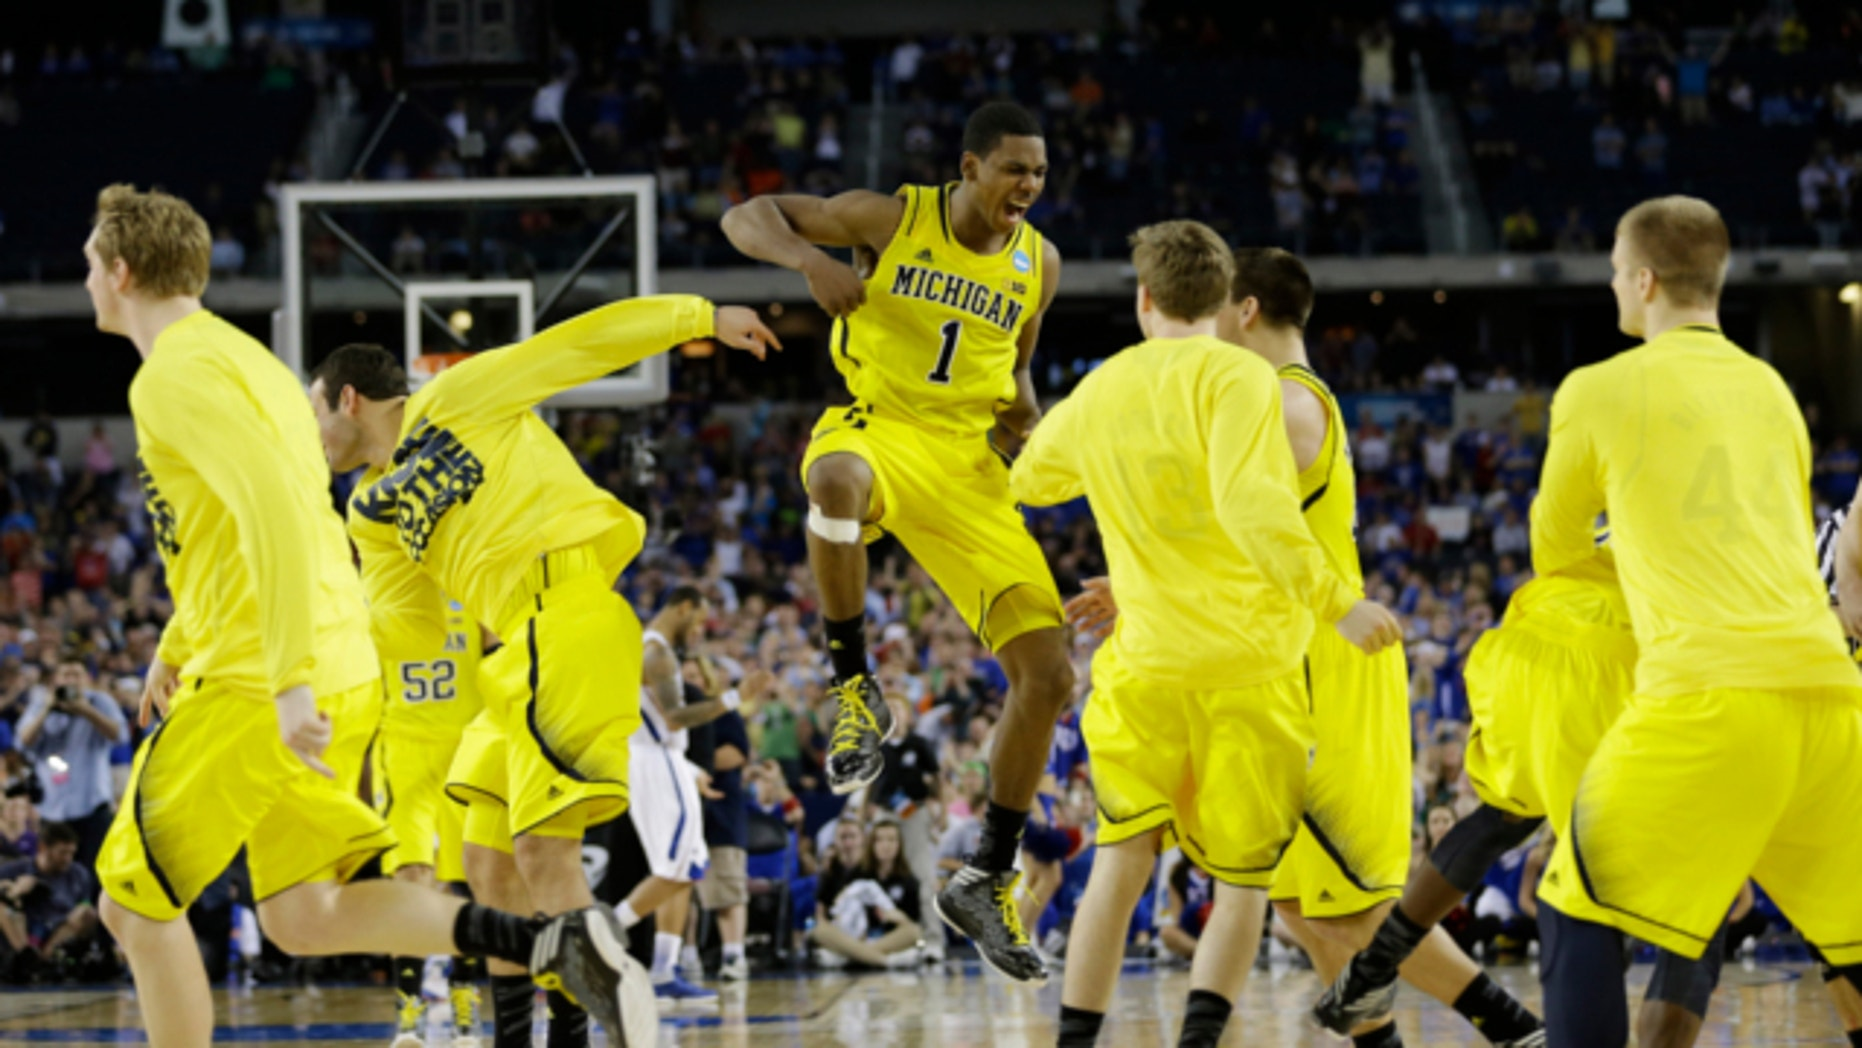 April 6, 2013: Michigan players including Time Hardaway Jr., right, and Nik Stauskas (11) celebrate after defeating Syracuse in their NCAA Final Four tournament college basketball semifinal game in Atlanta. Michigan won 61-56.